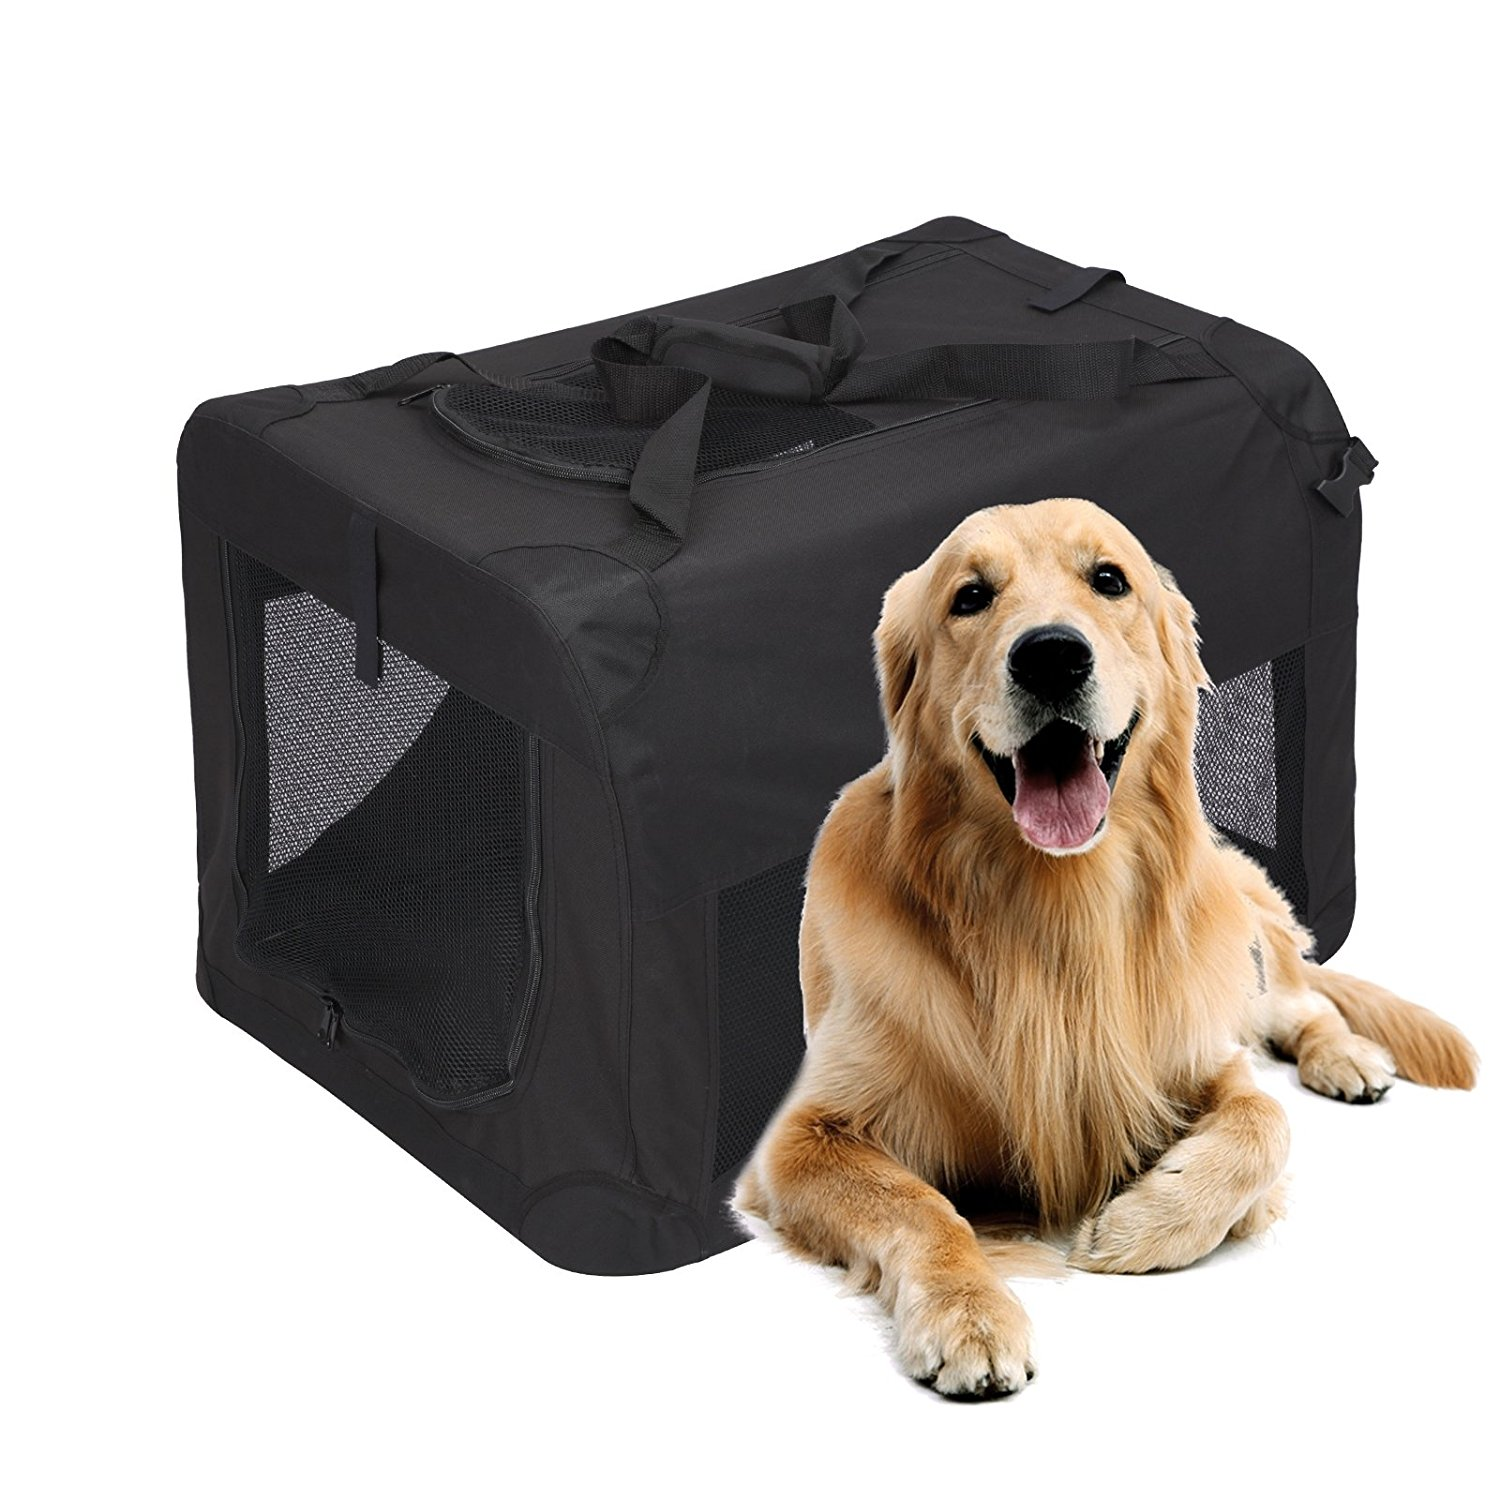 Magshion Portable Crates Kennels Fabric Transport With Sturdy Metal Frame Metal Cages 48'' Pink